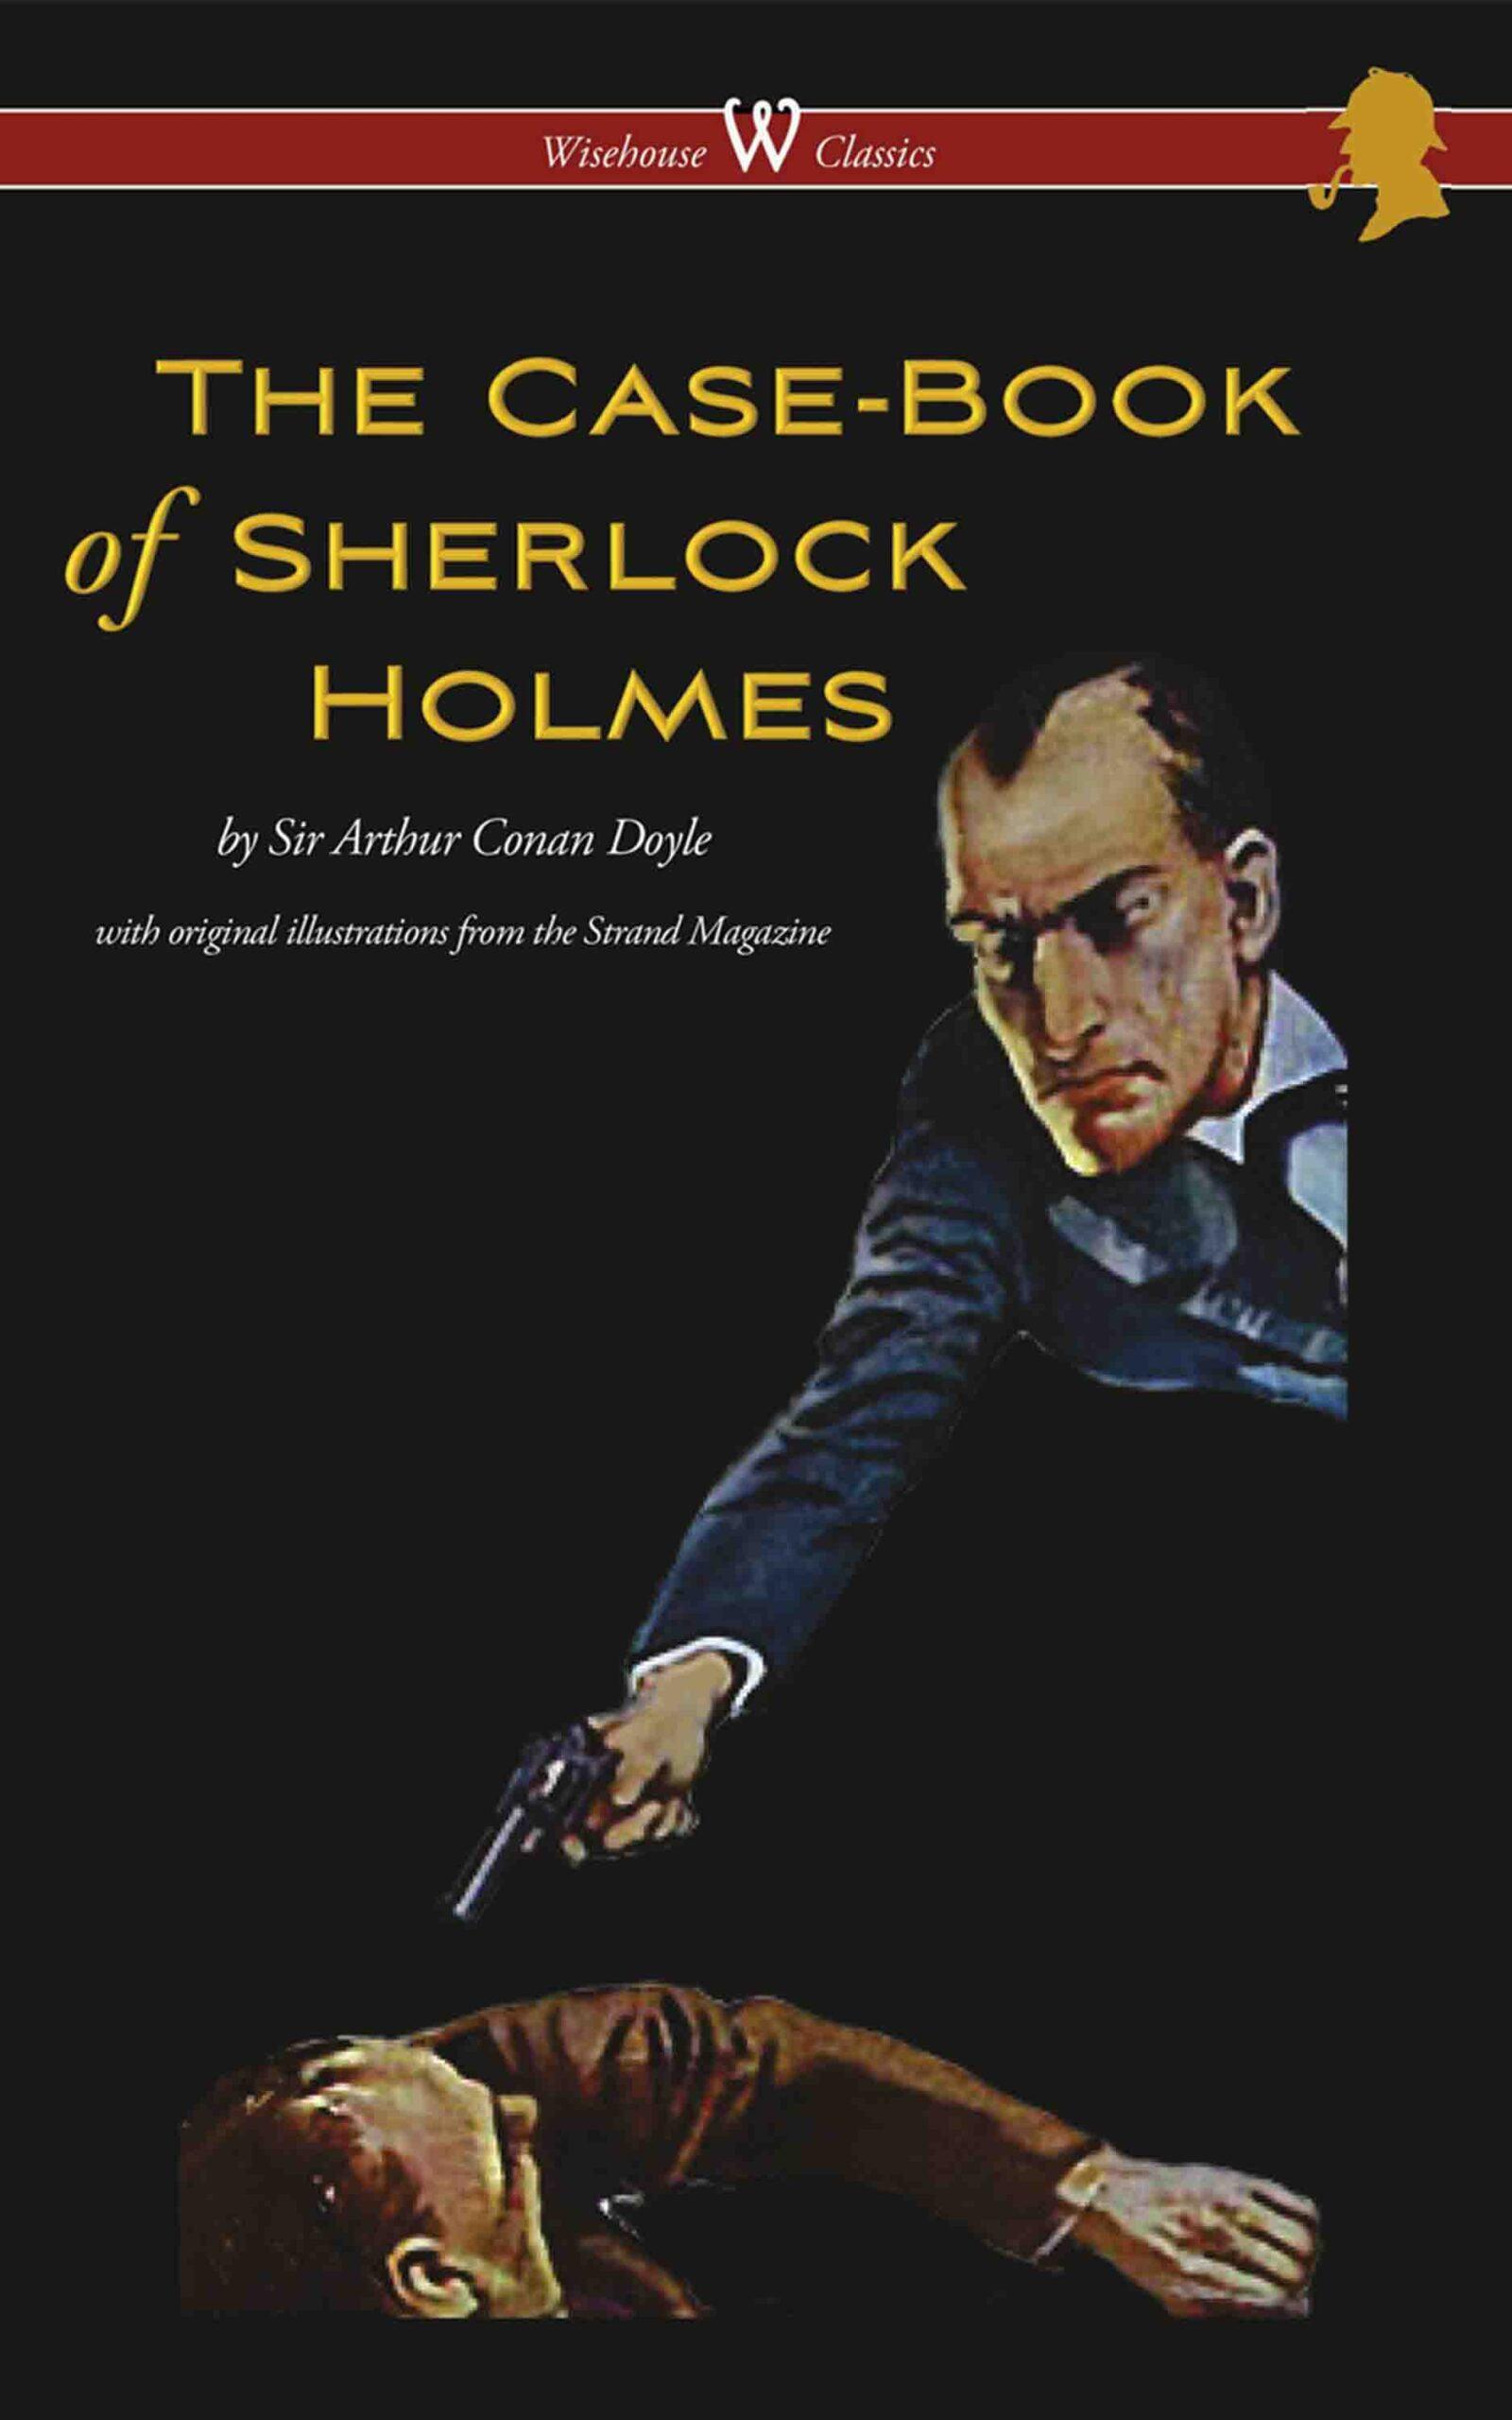 The Case-Book of Sherlock Holmes (Wisehouse Classics Edition – With Original Illustrations from Strand Magazine)